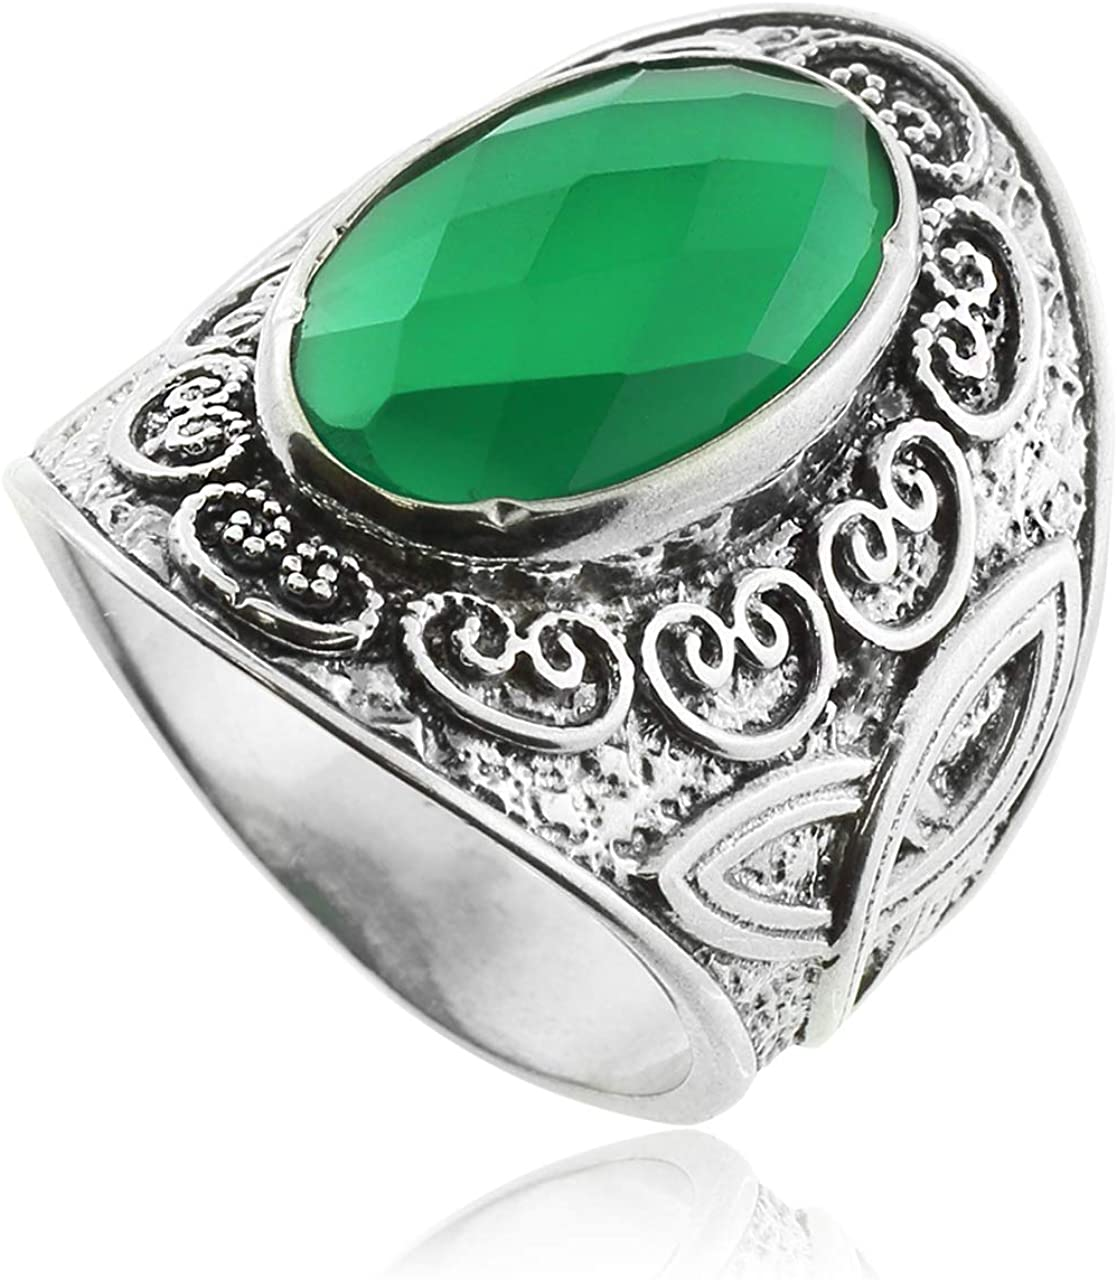 Celtic Rings Green Agate Silver